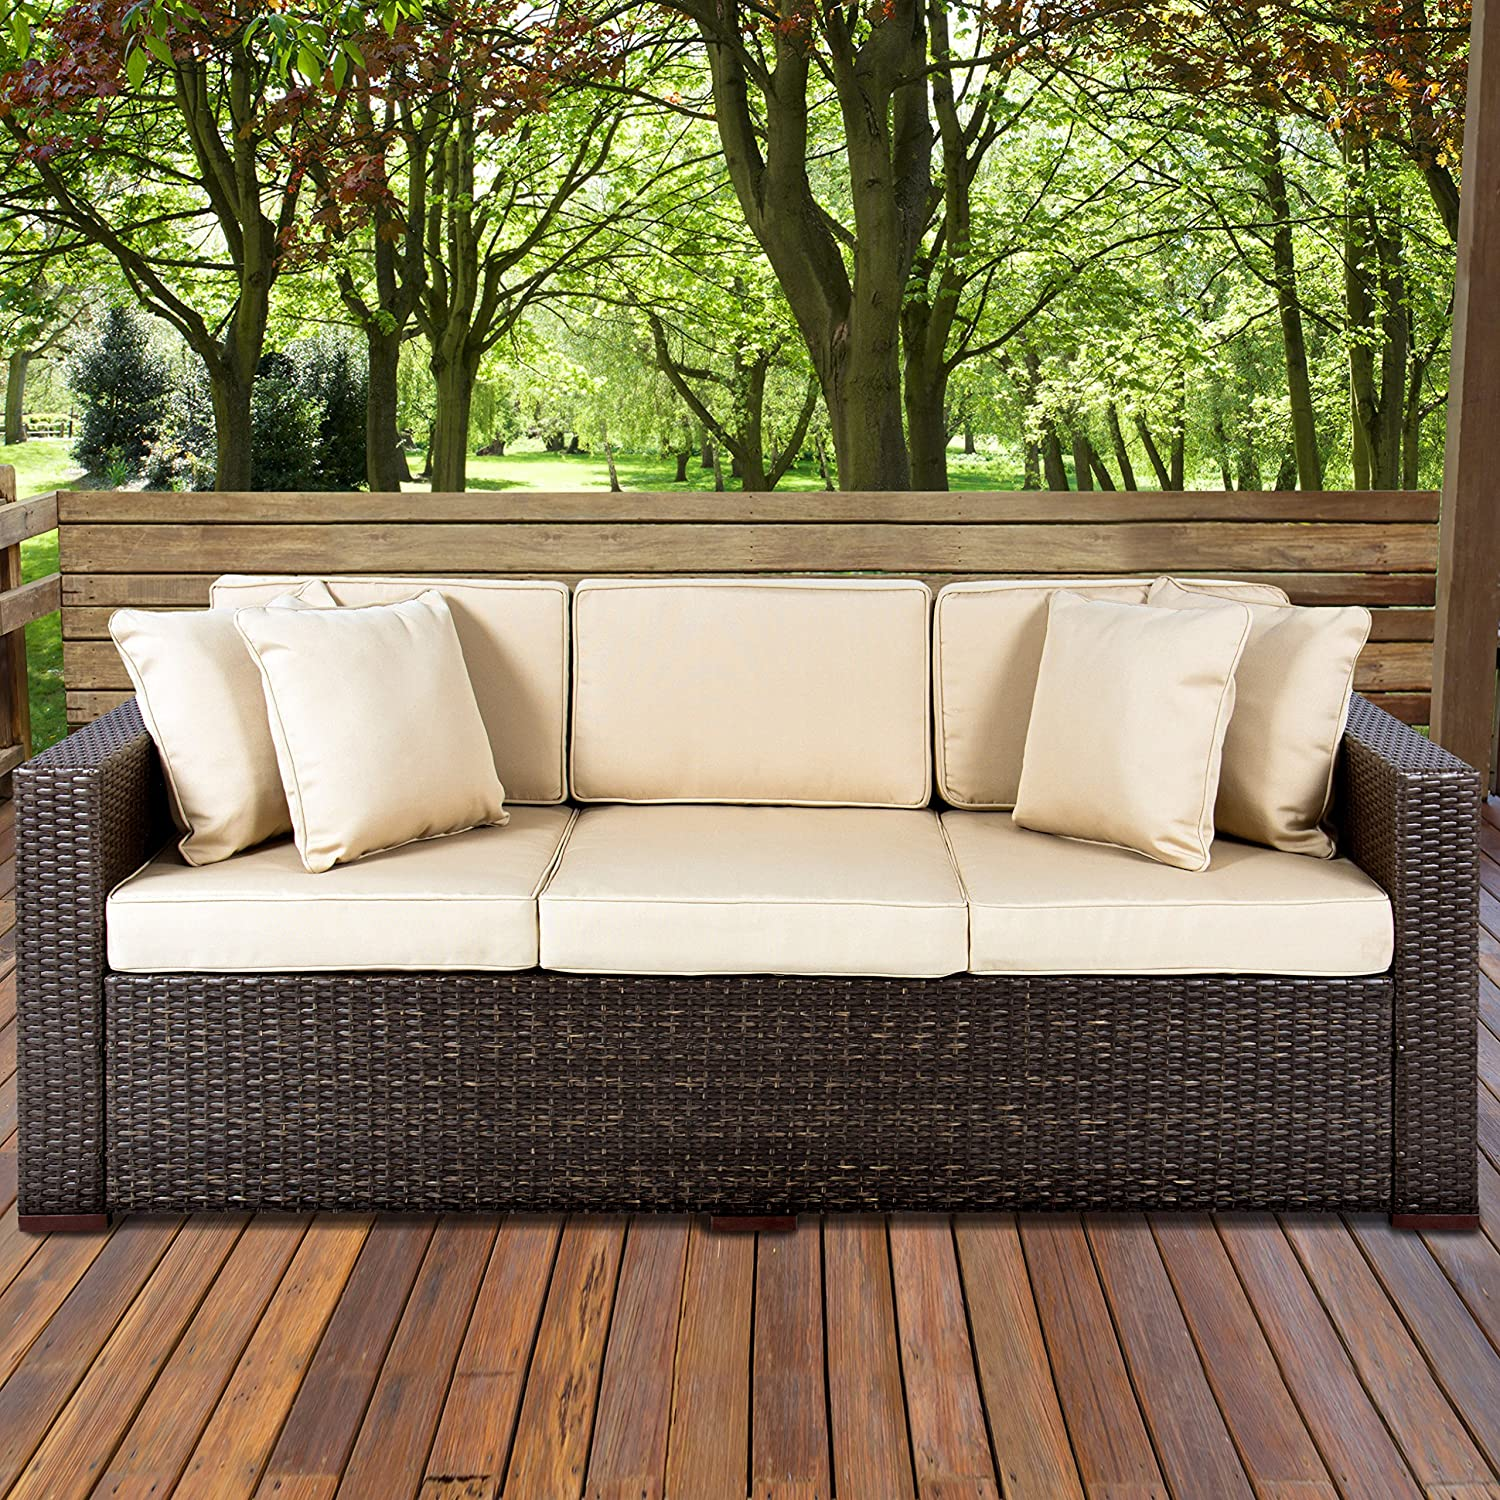 shaped silver set sofa furniture patio wicker sectional classico outdoor